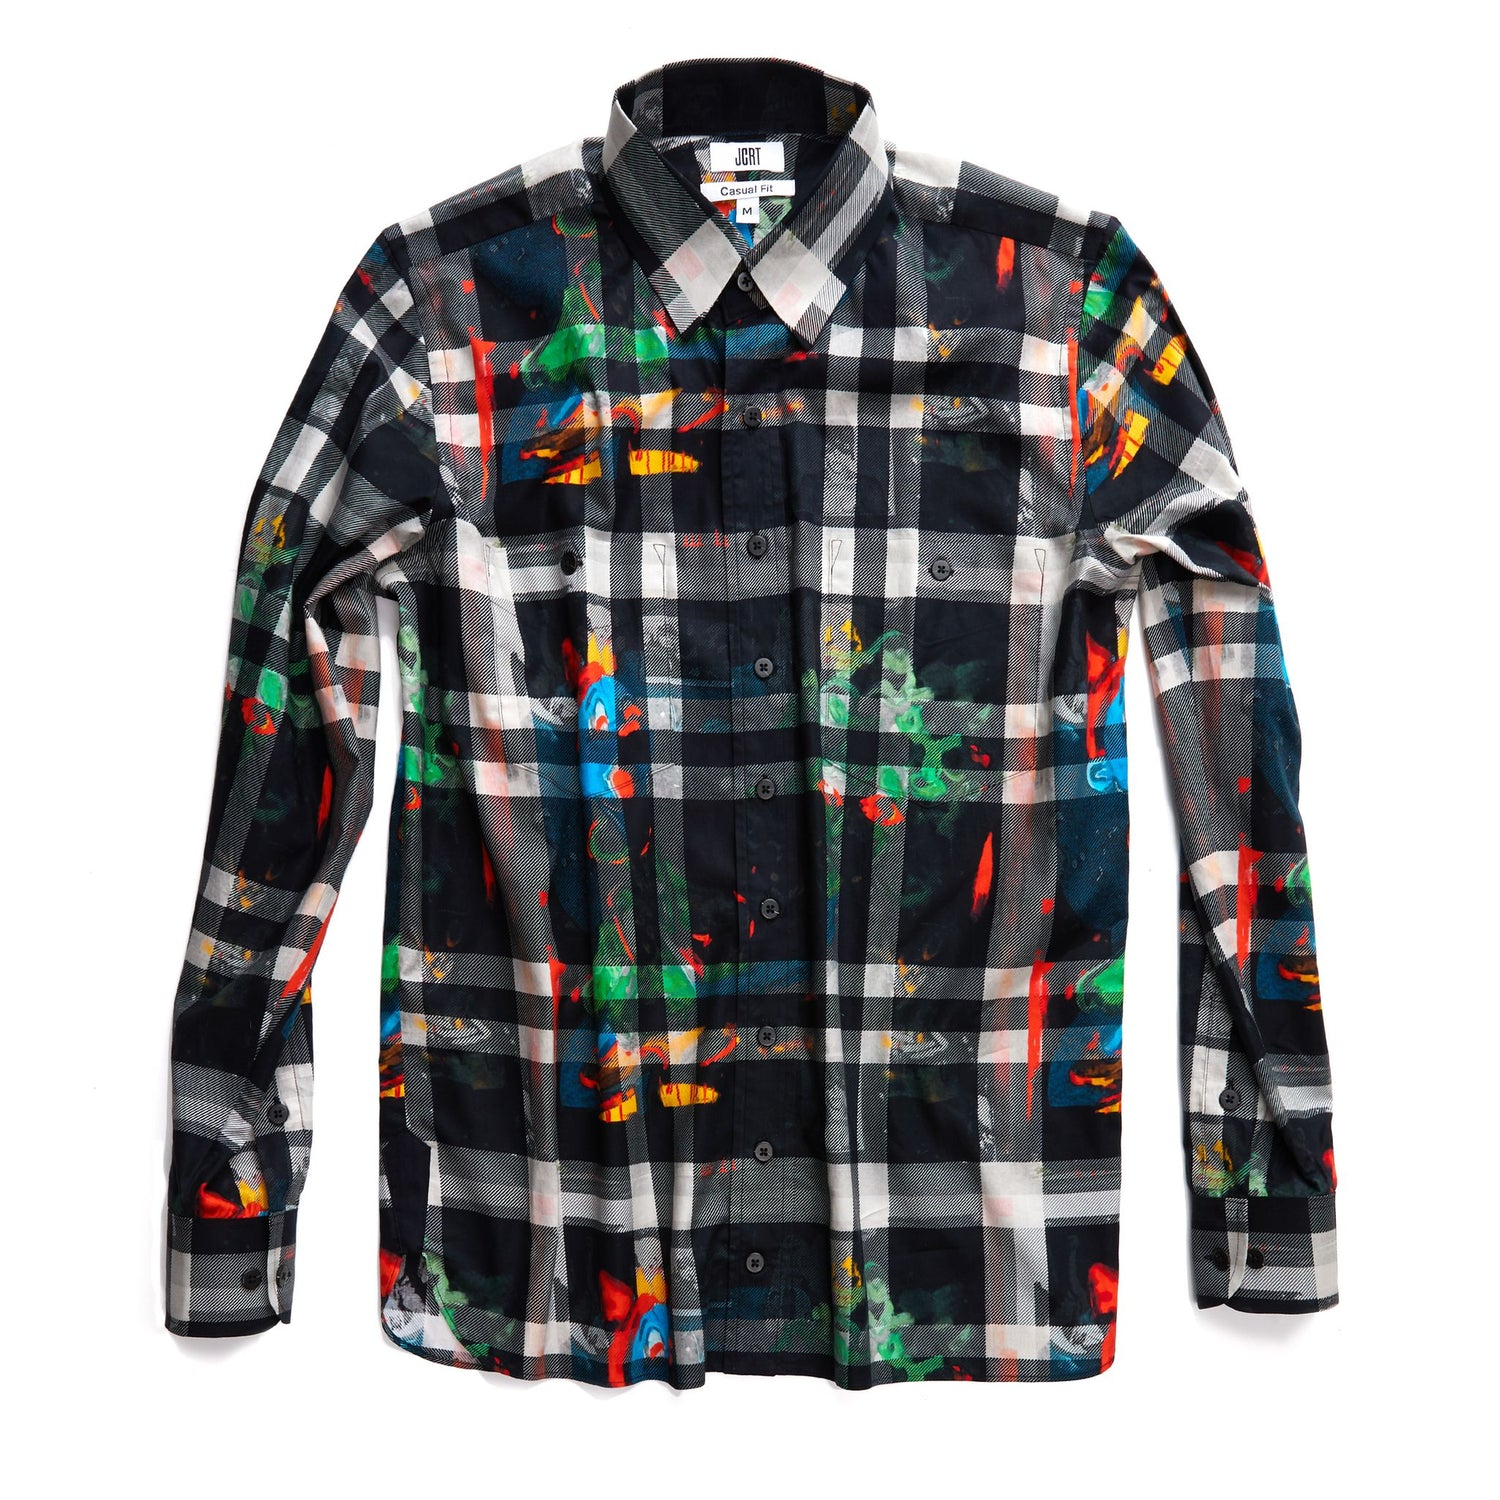 The Scooter Blue Smurf Plaid Long Sleeve Shirt